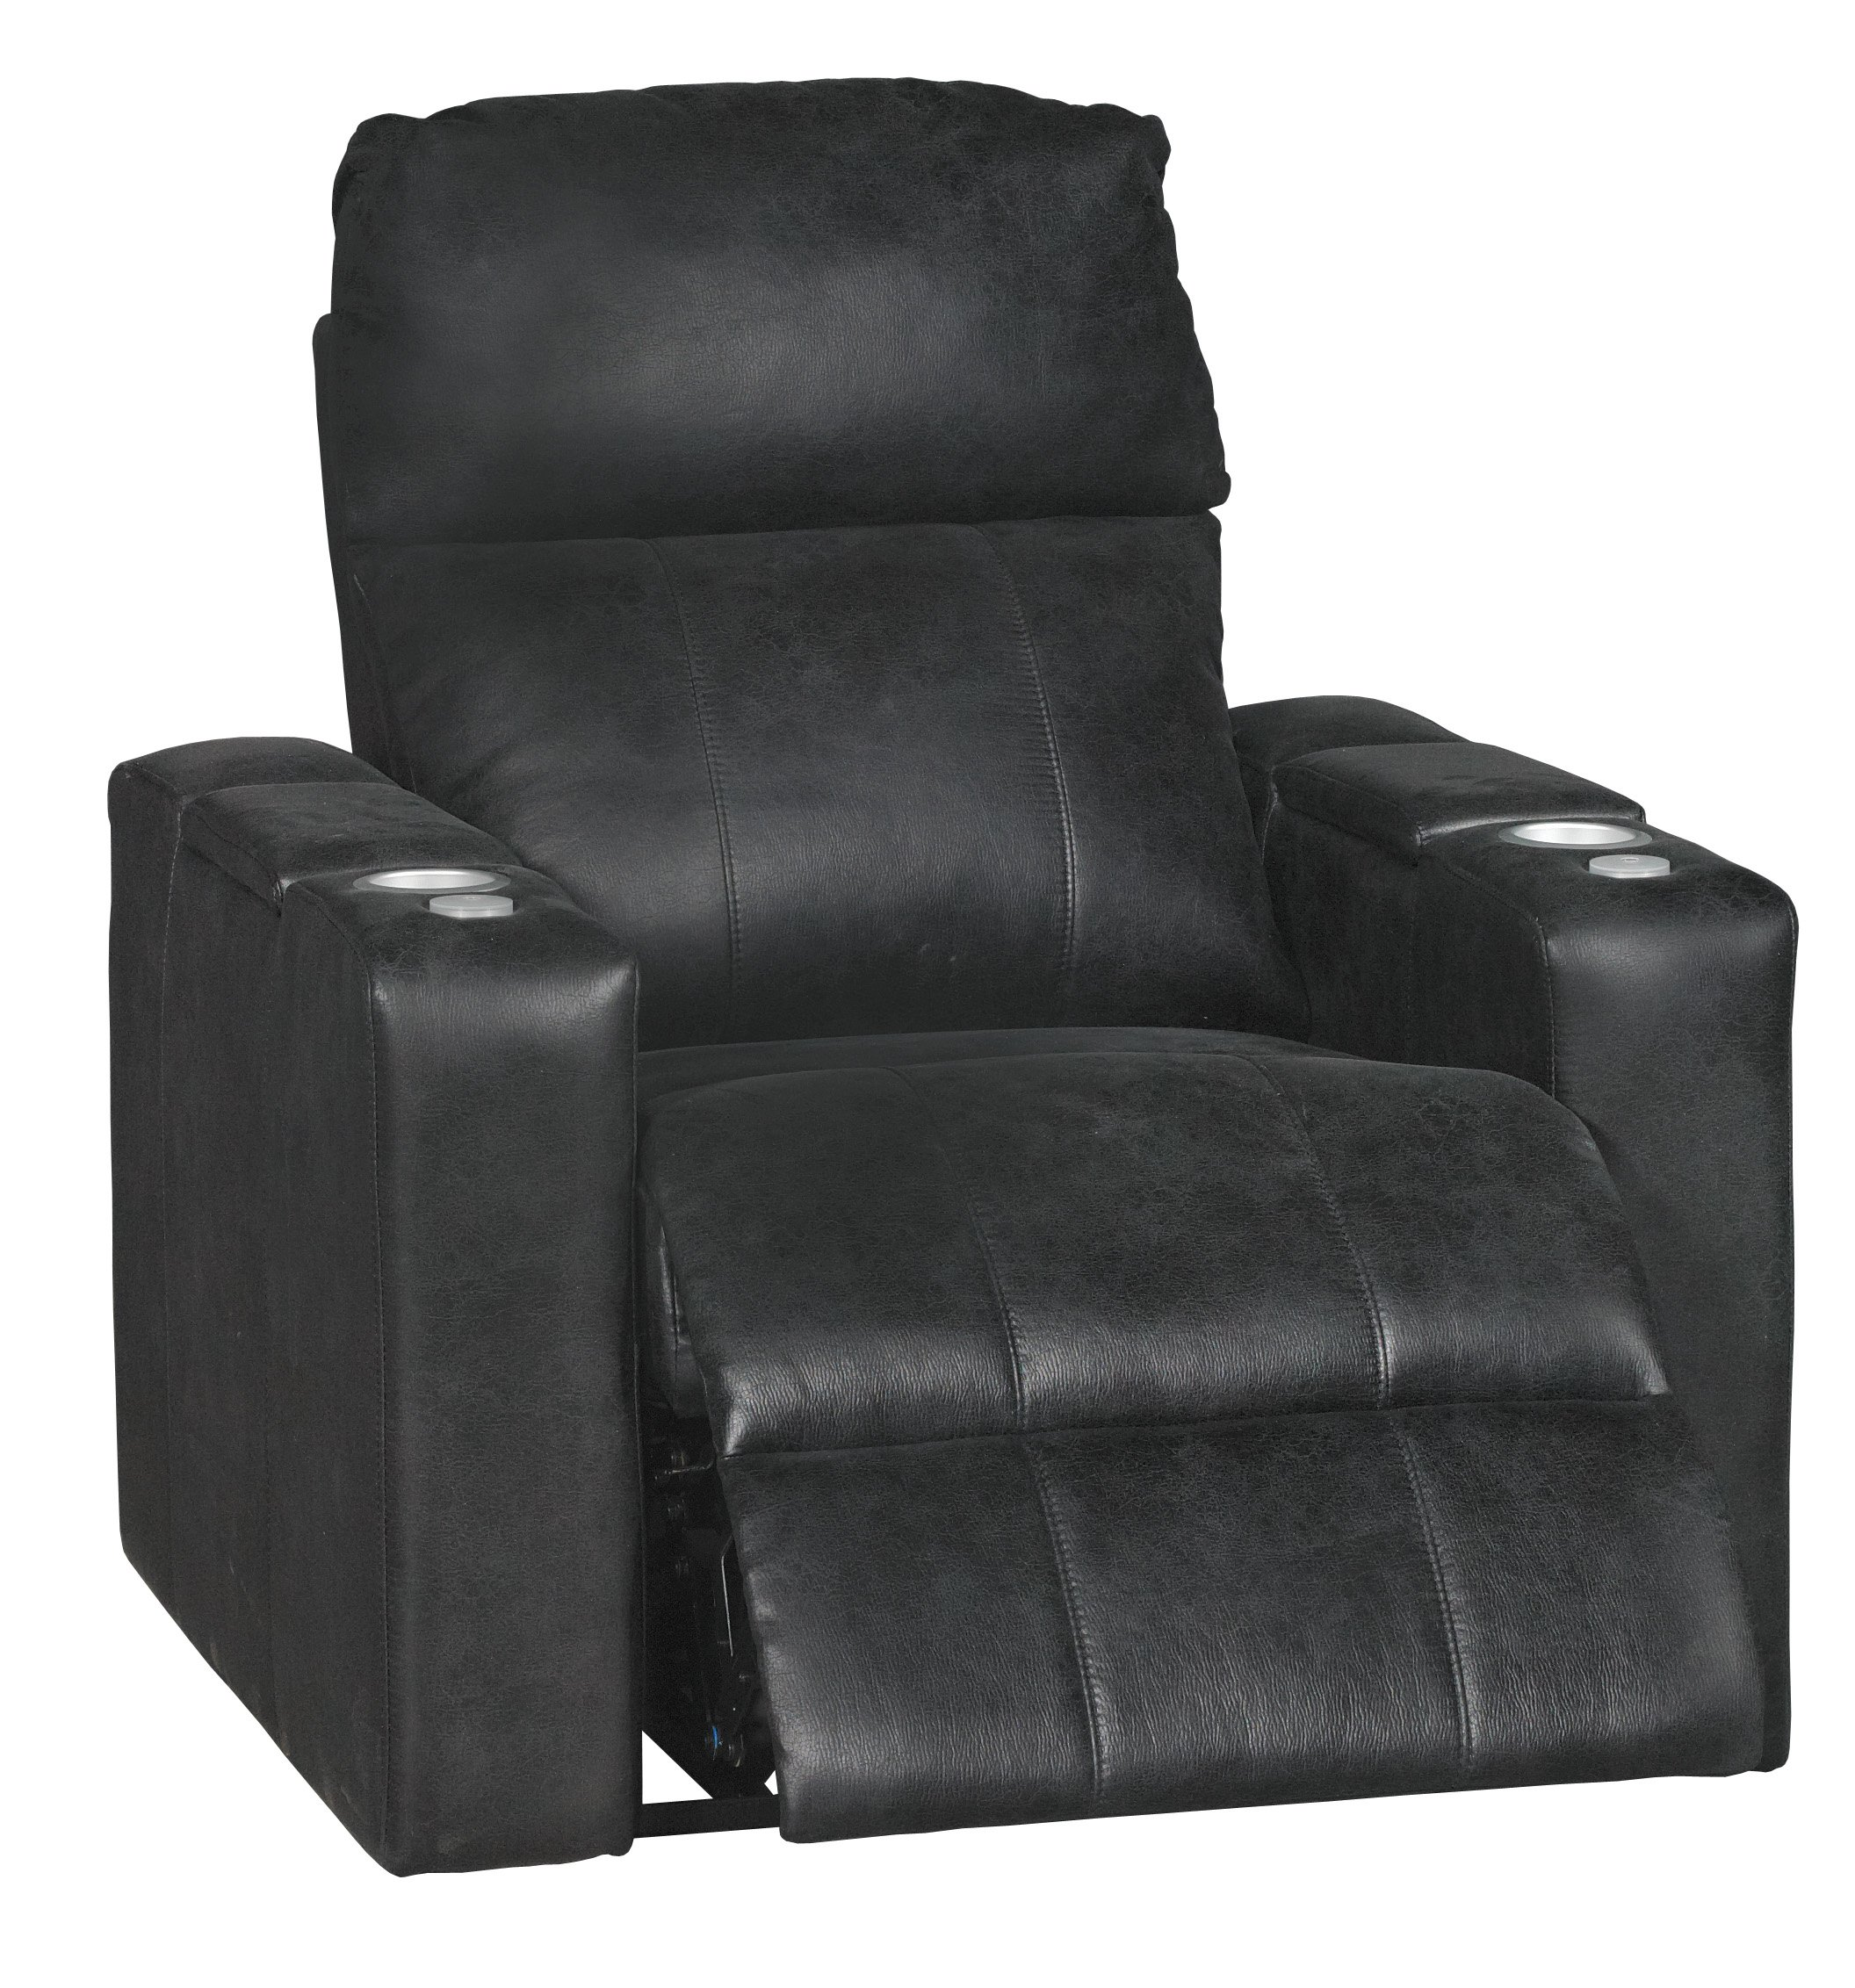 Eclipse Black Home Theater Power Recliner - Headliner  sc 1 st  RC Willey & Eclipse Black Power 3-Piece Reclining Home Theater Seating ... islam-shia.org